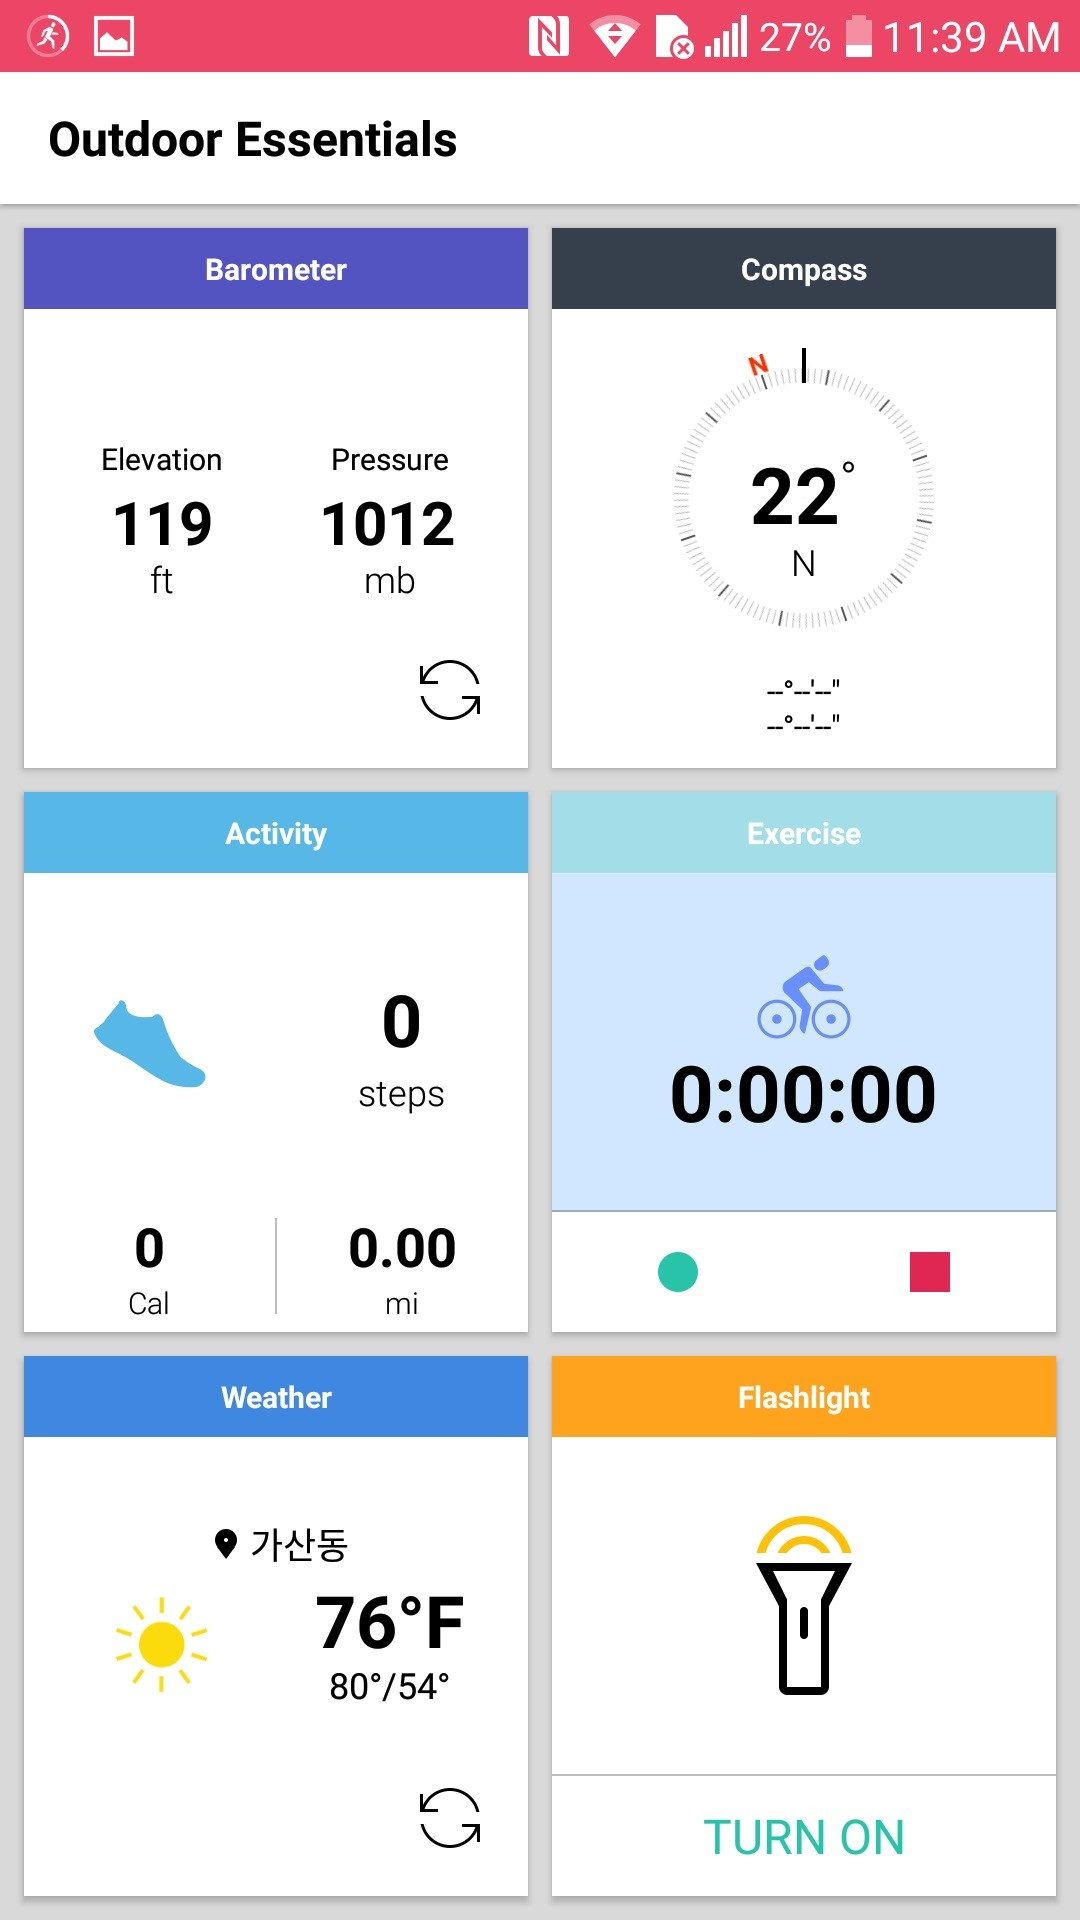 A screenshot of the LG X venture's Outdoor Essentials app, which includes tabs for Barometer, Compass, Activity, Exercise, Weather and Flashlight